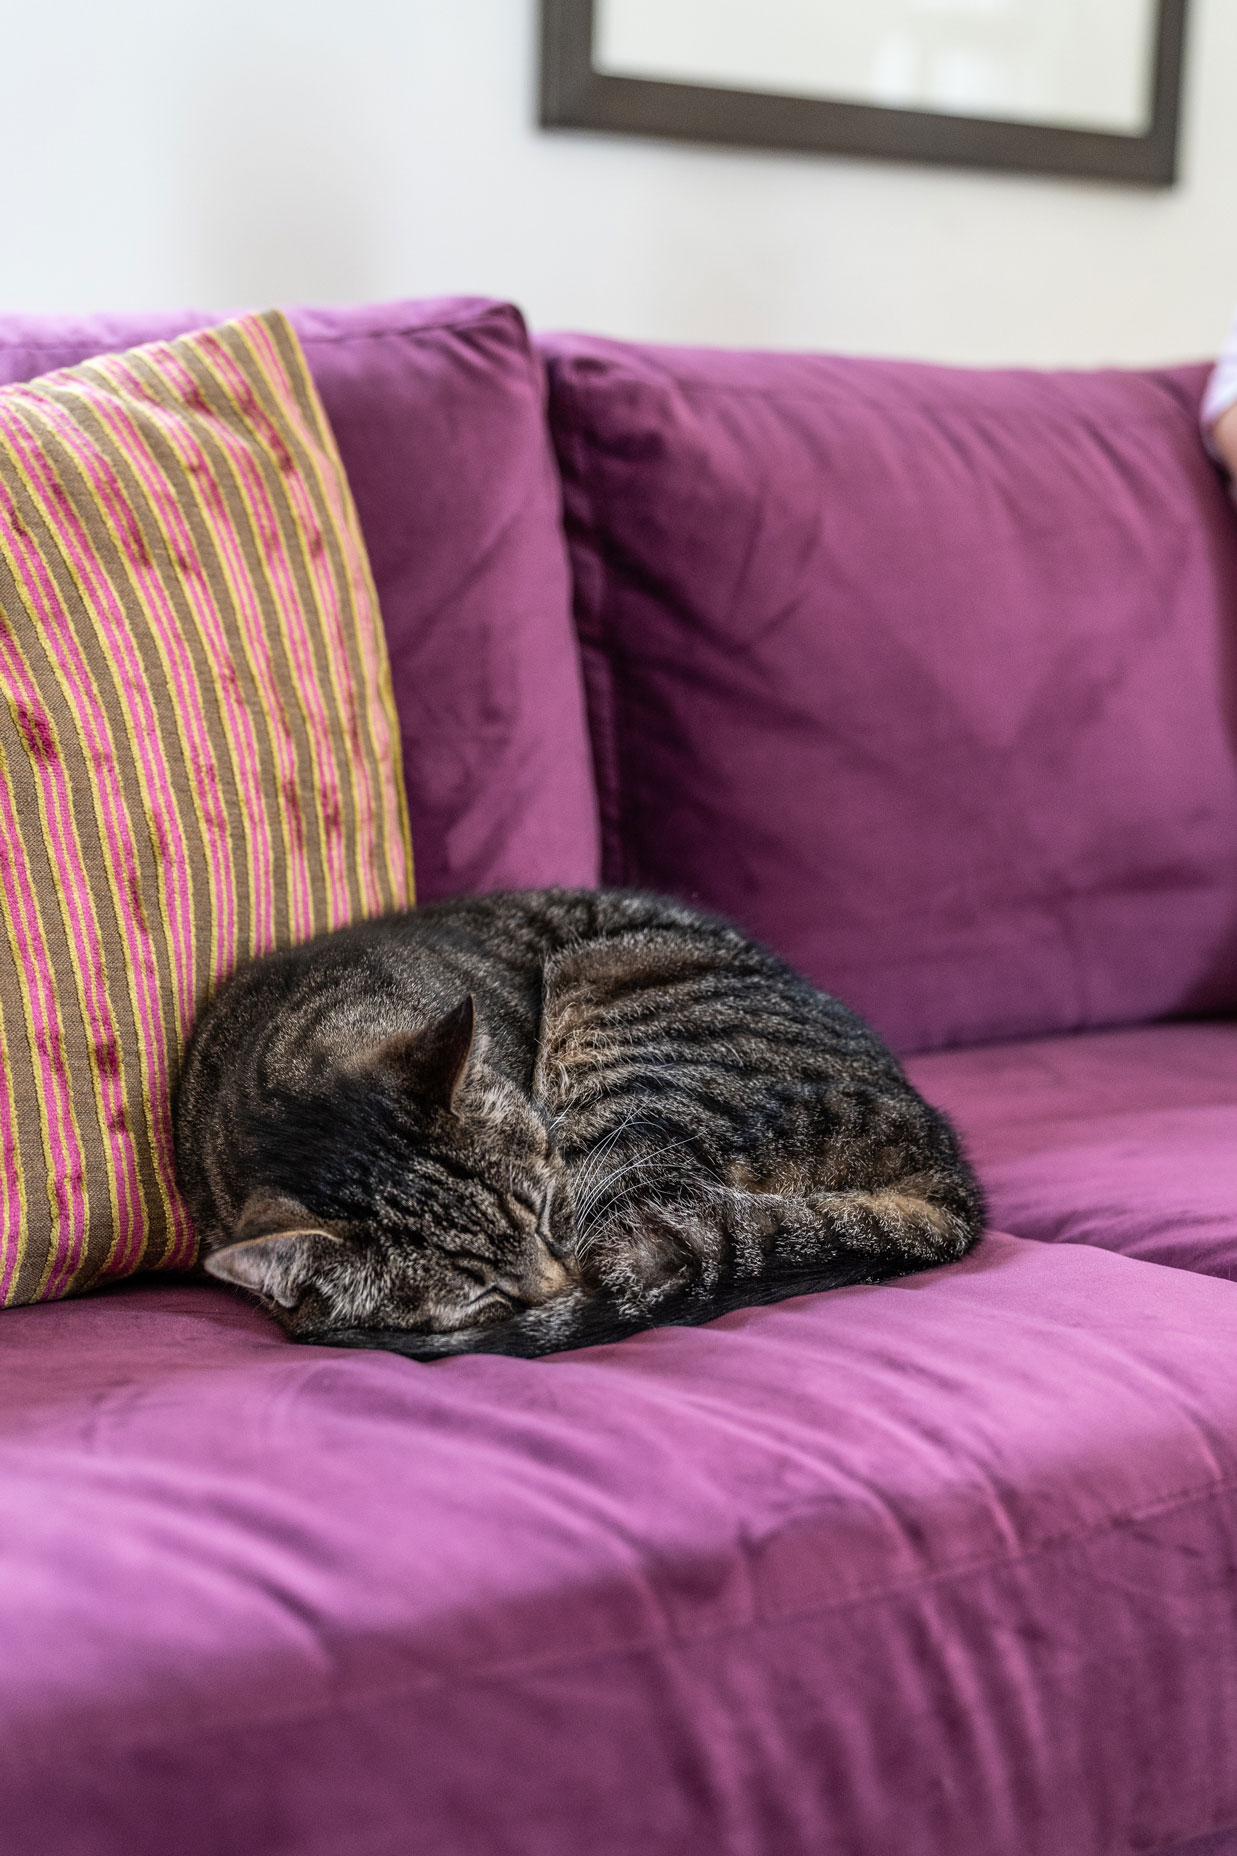 Cat on a purple sofa